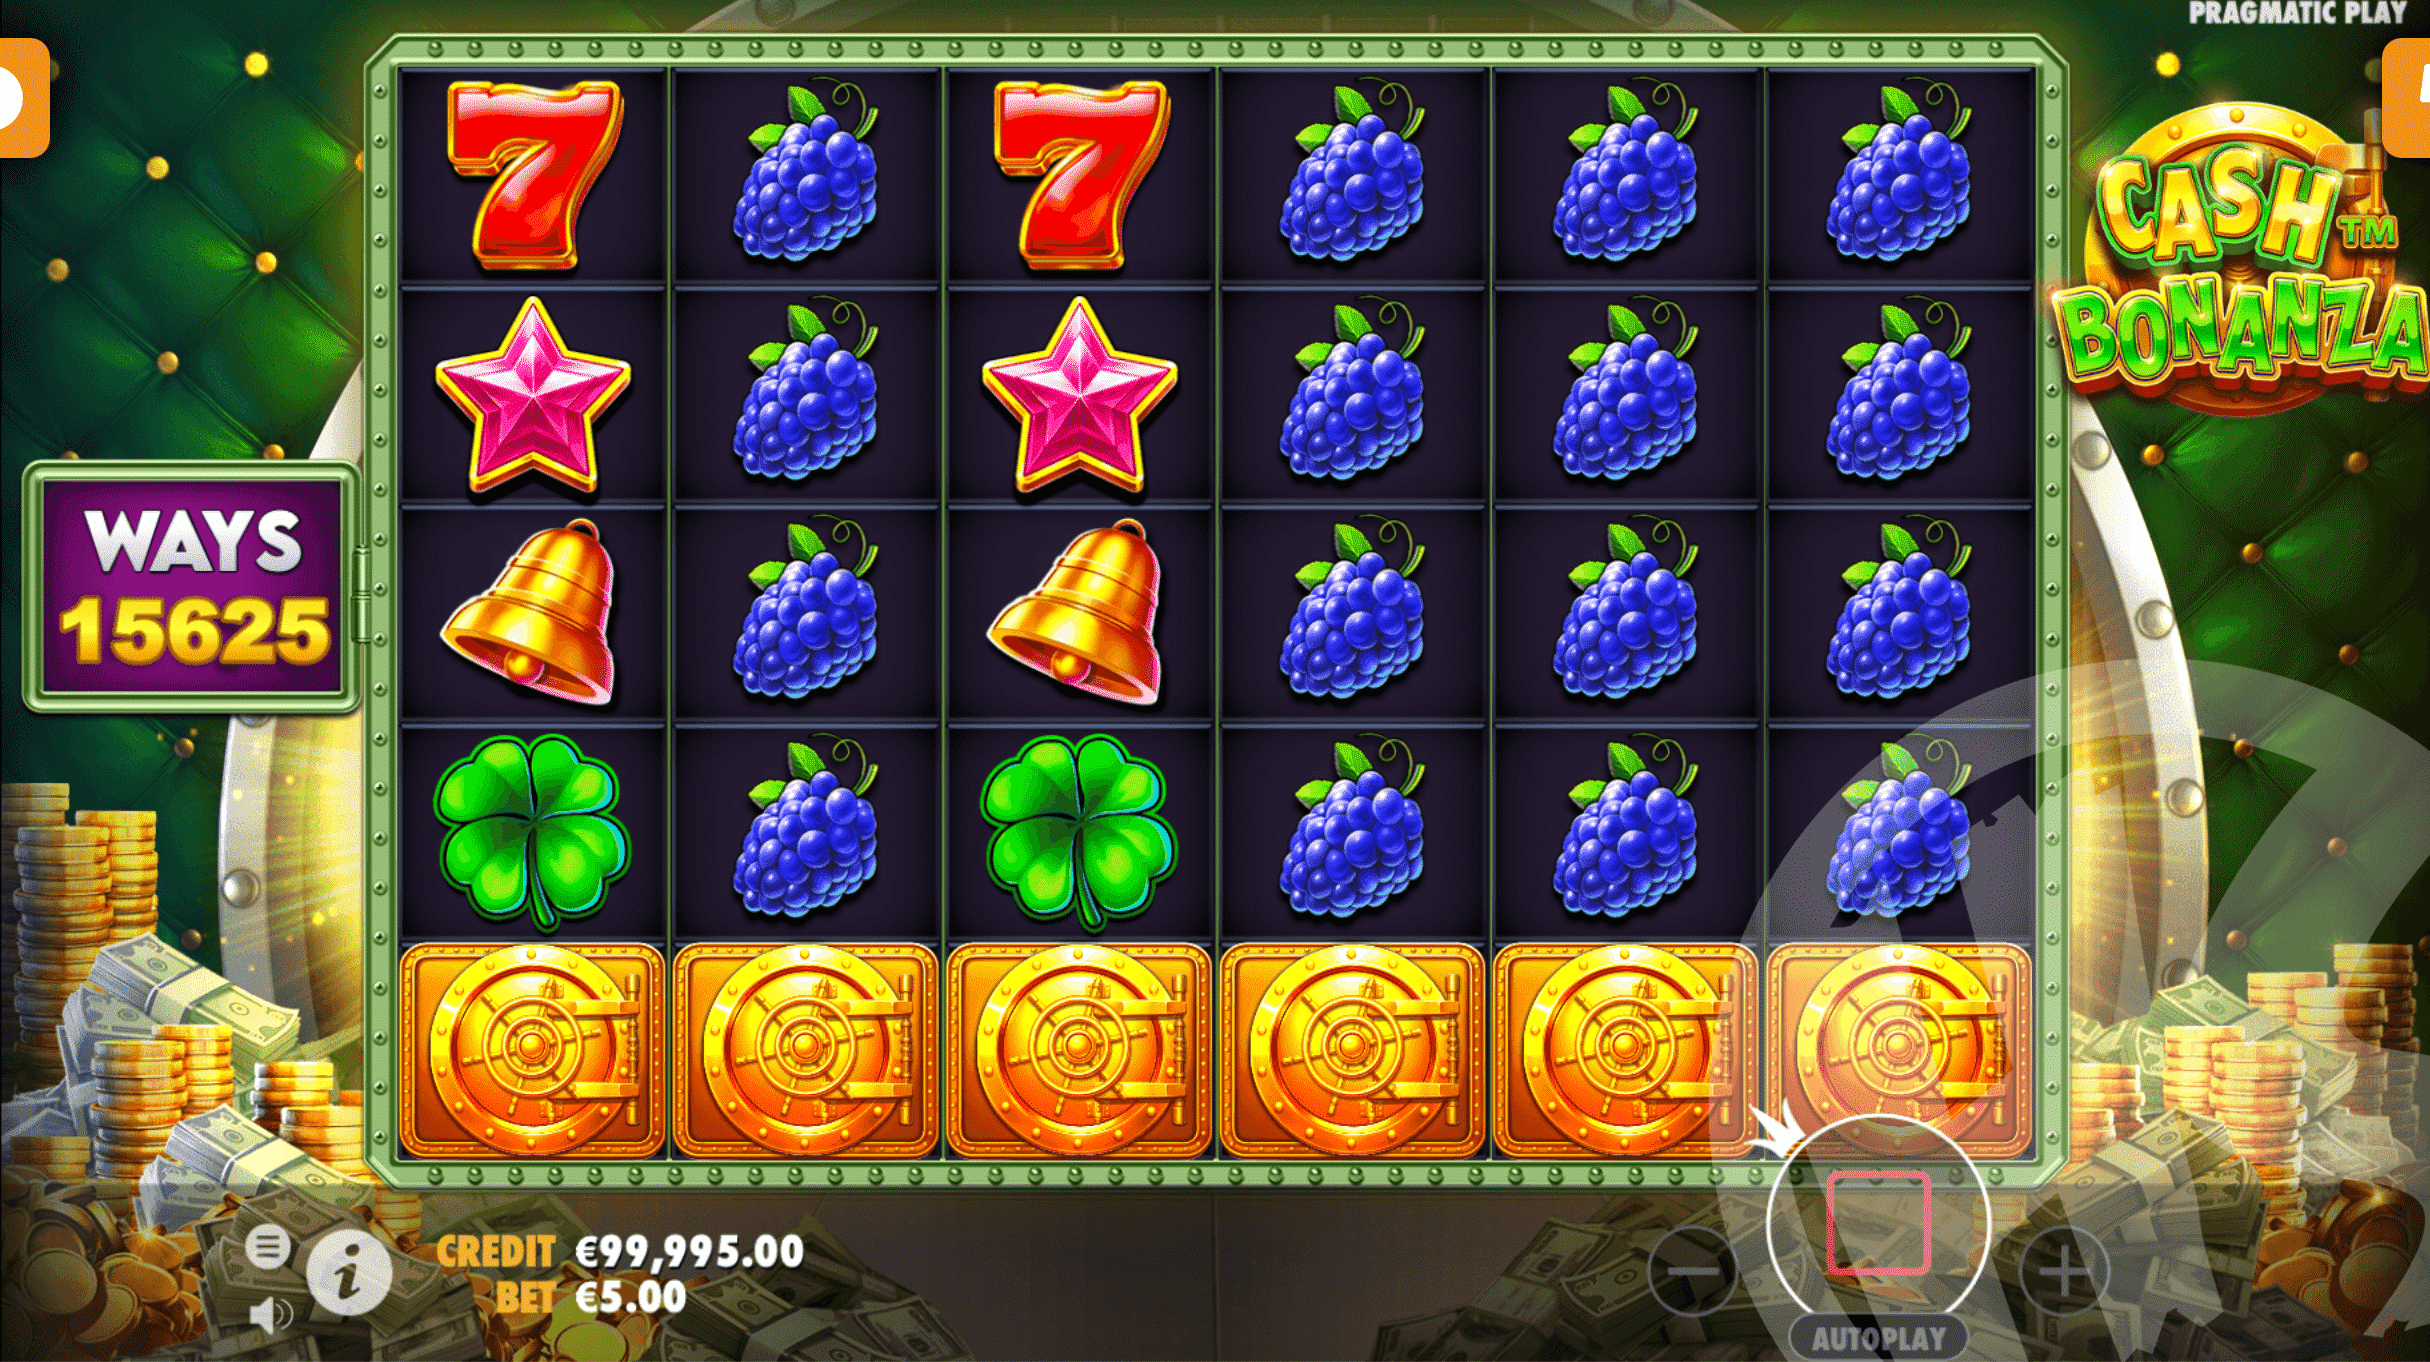 3 or More Scatters Trigger Free Spins